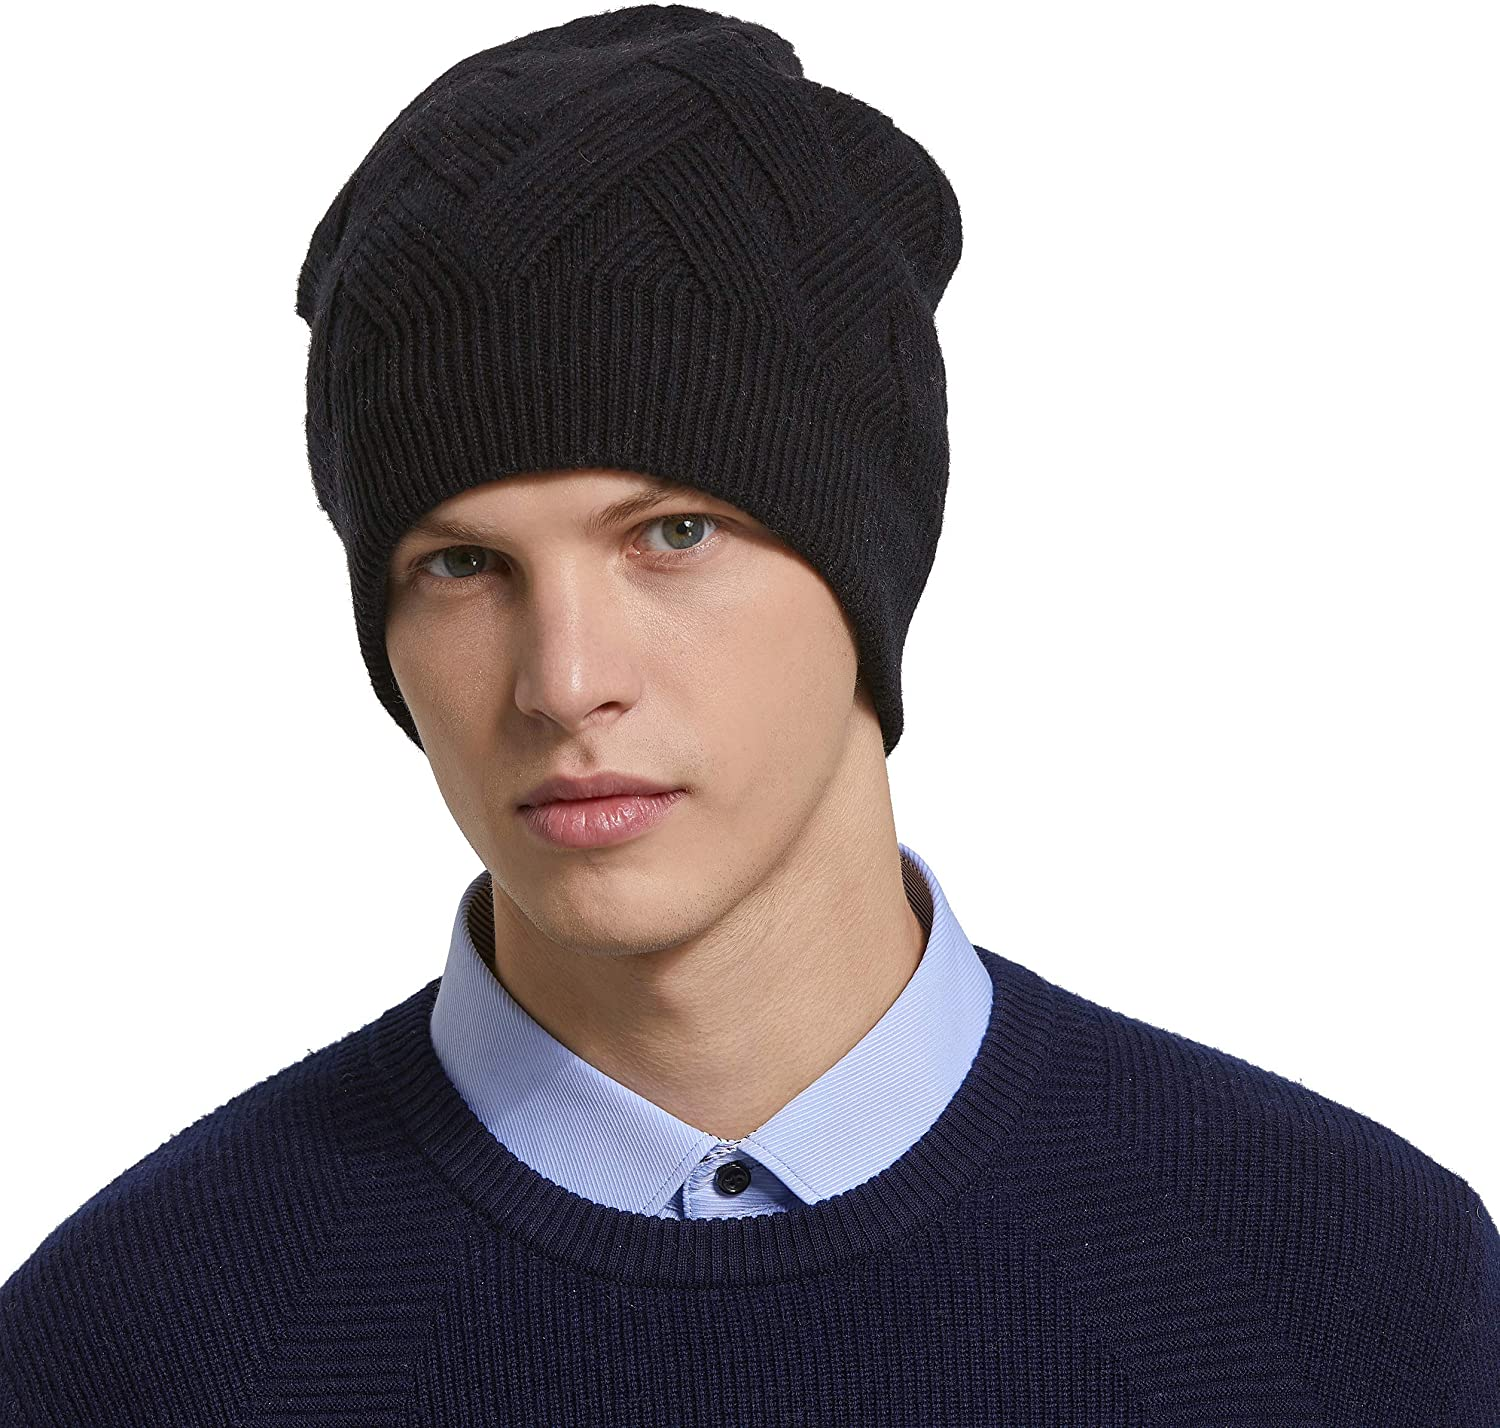 New Mens Ladies Knitted Woolly Stretchy Warm Beanie Hat Cap Skateboard Winter